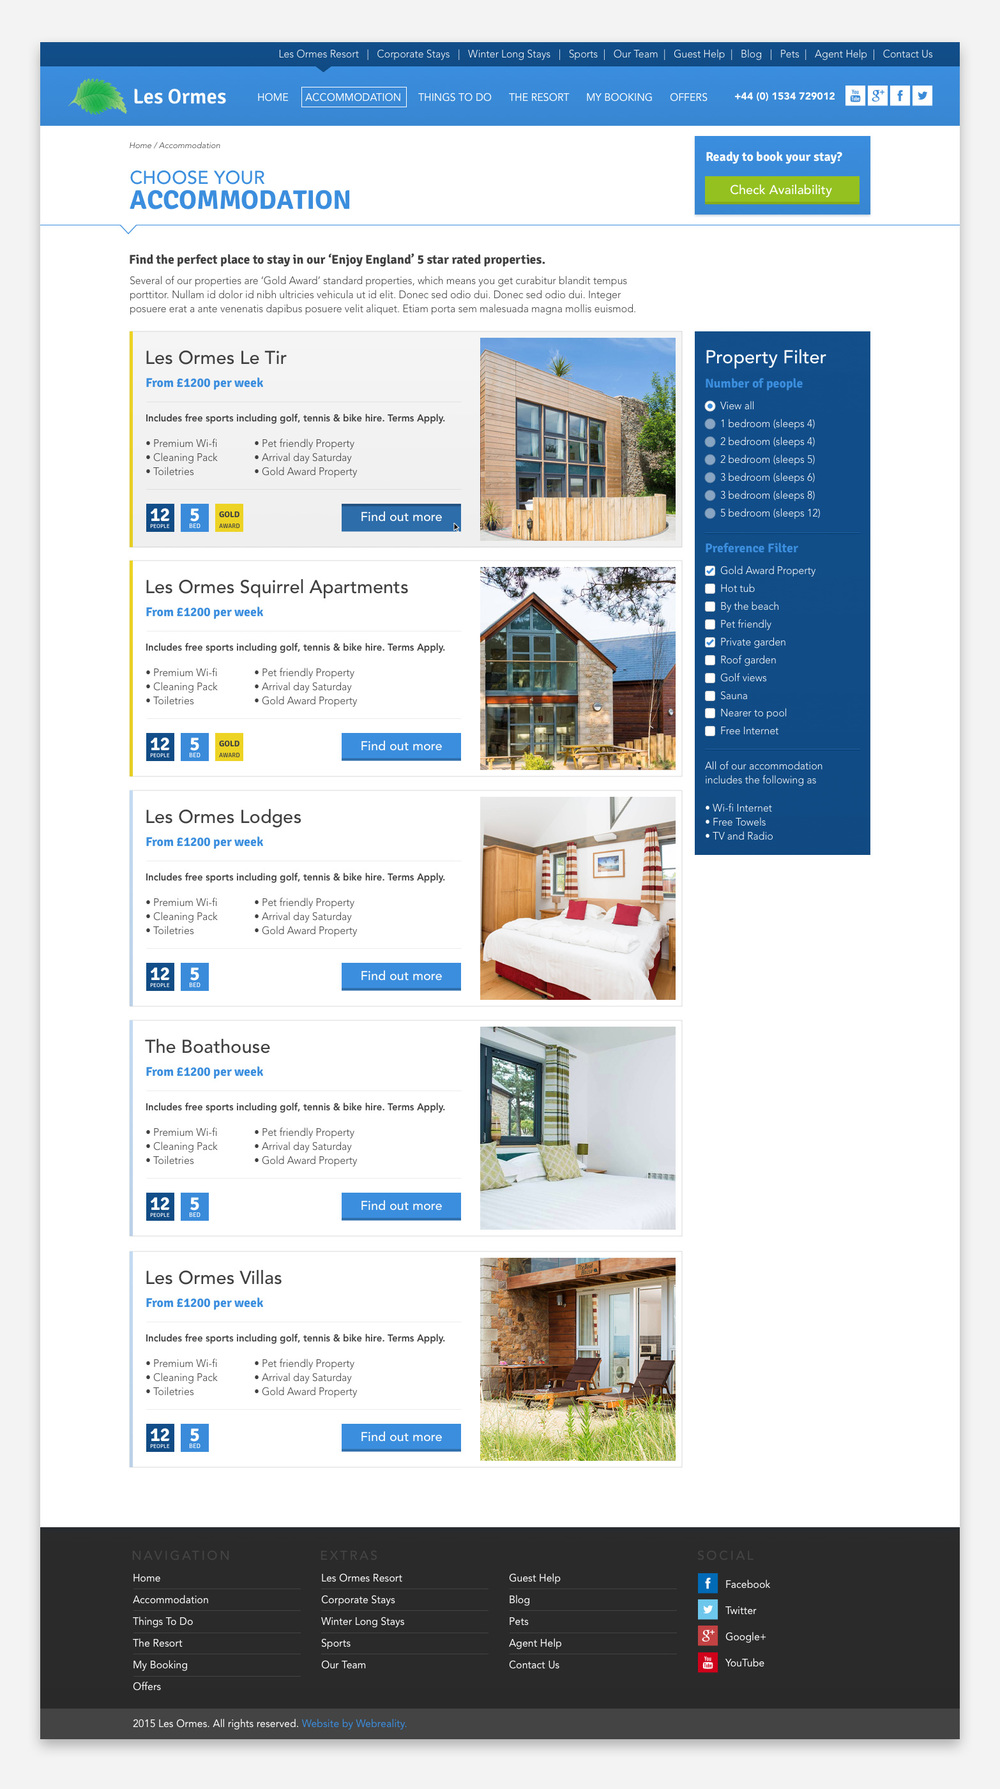 The Accommodation page. This displays all the properties and enables the user to search by property type and preference.